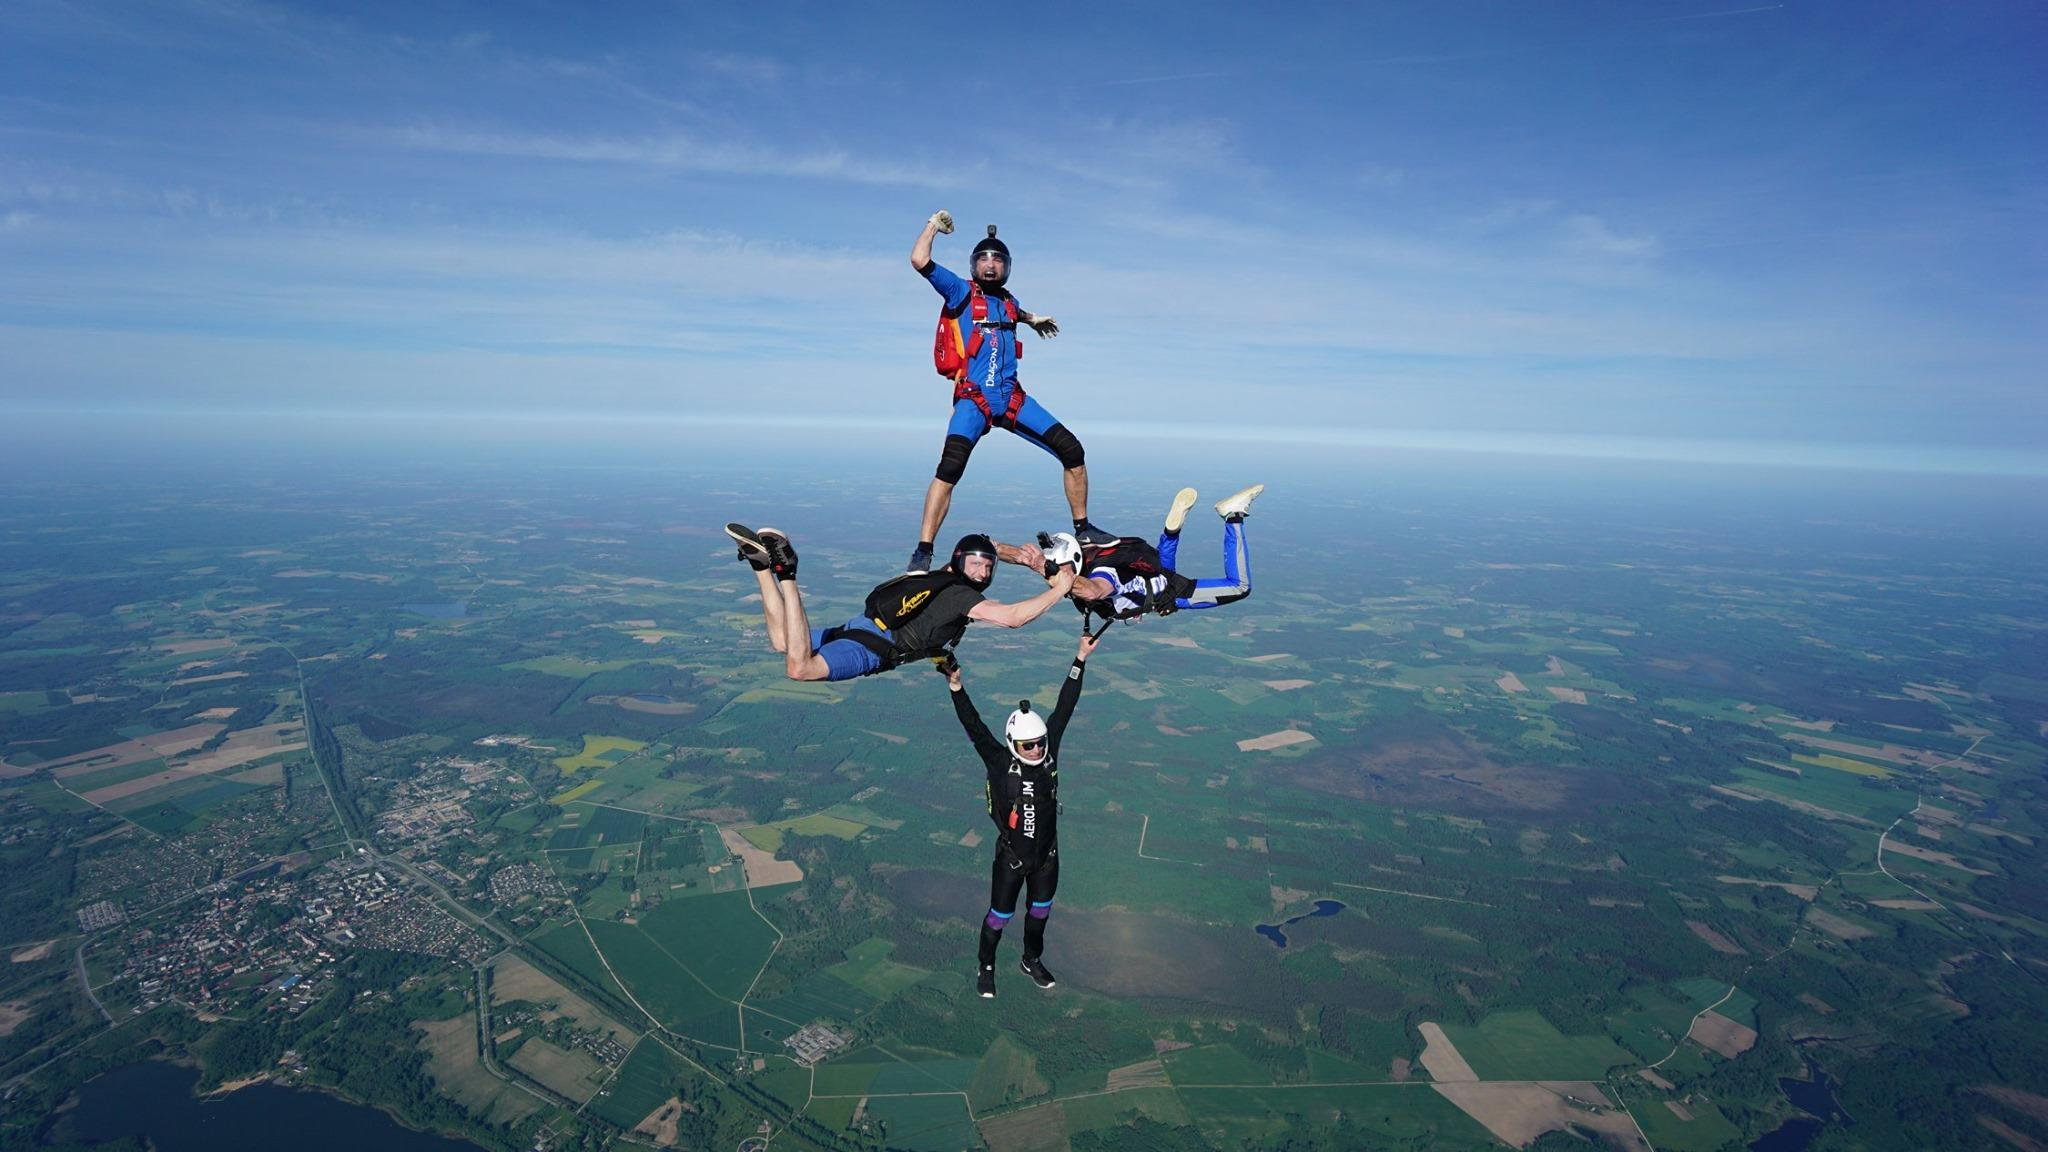 Skydiving Glossary - Safety - Dropzone.com